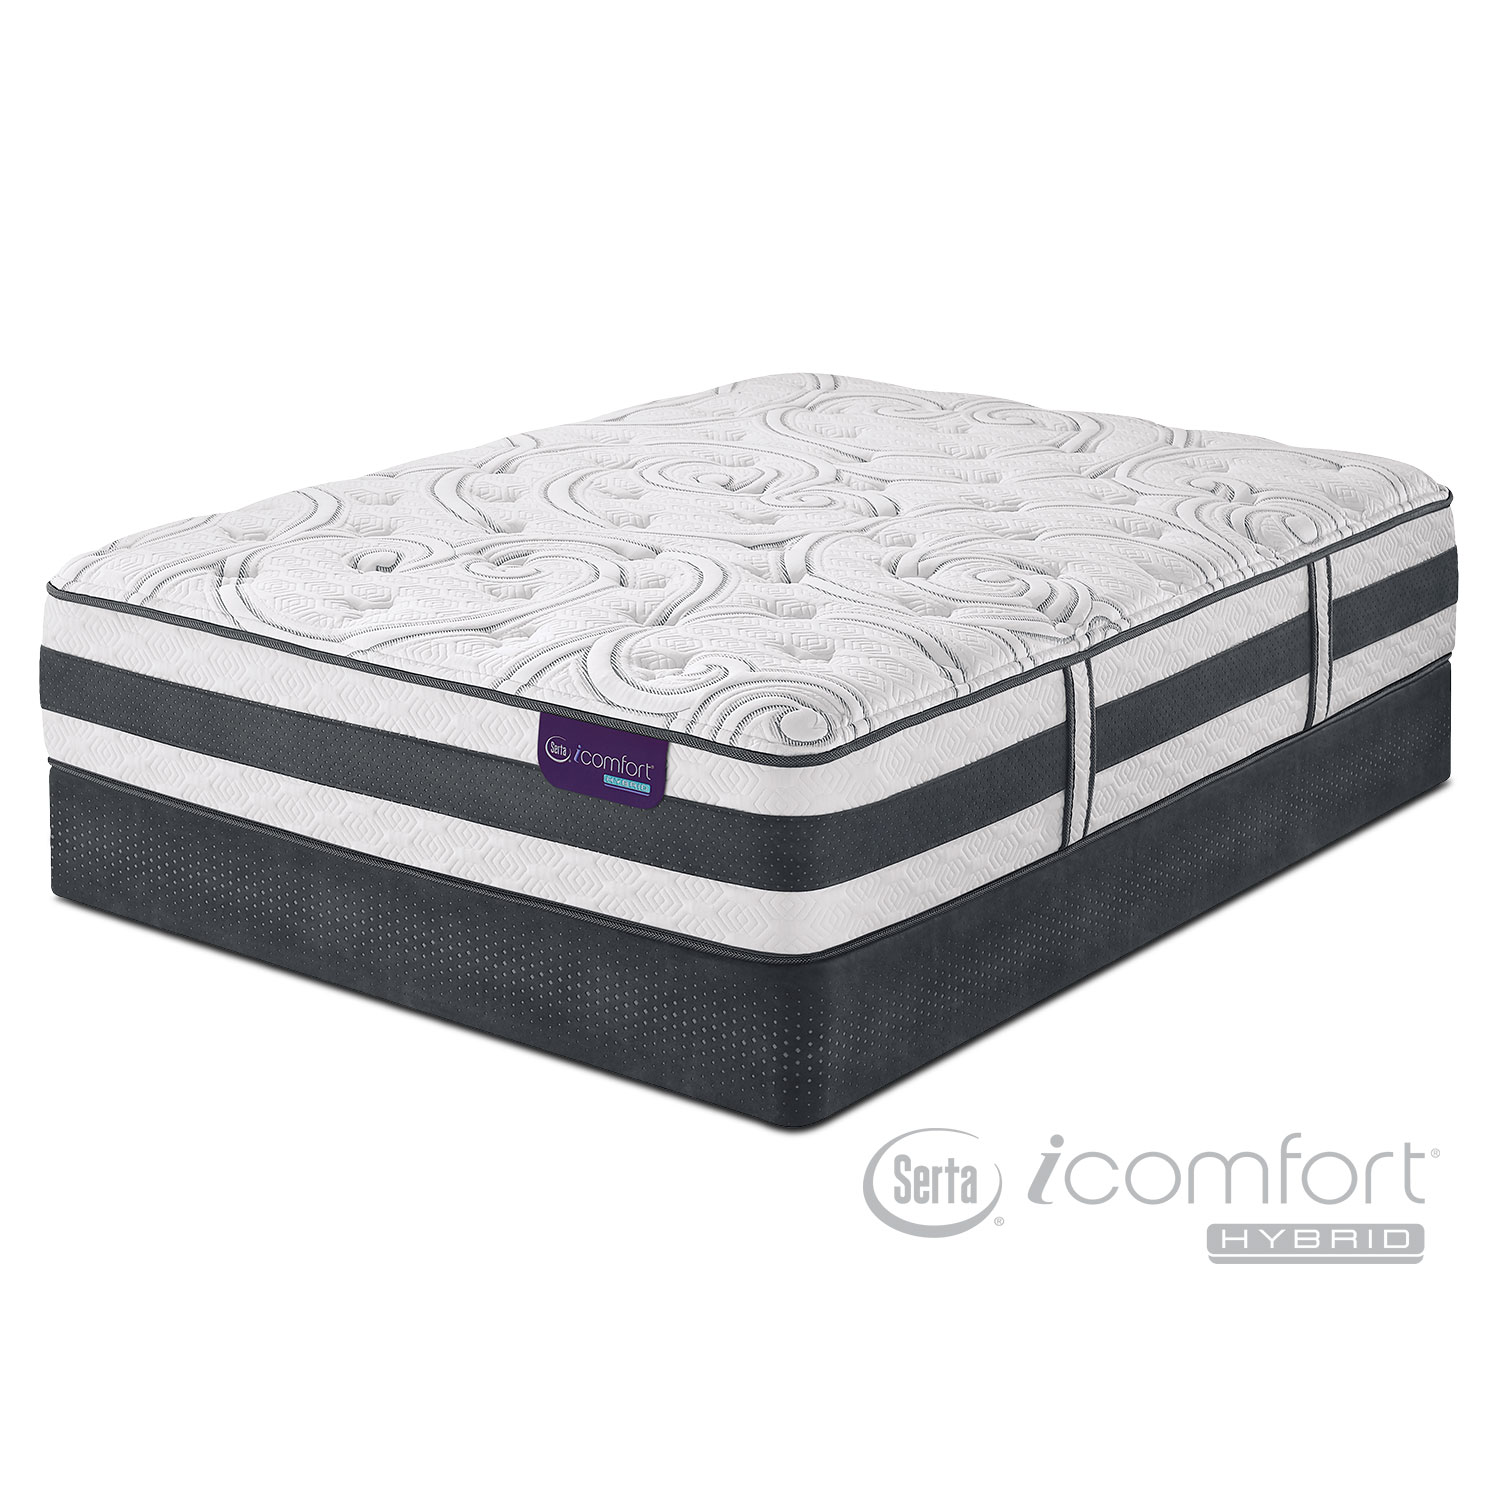 Mattresses and Bedding - Applause II Plush Full Mattress/Low-Profile Foundation Set